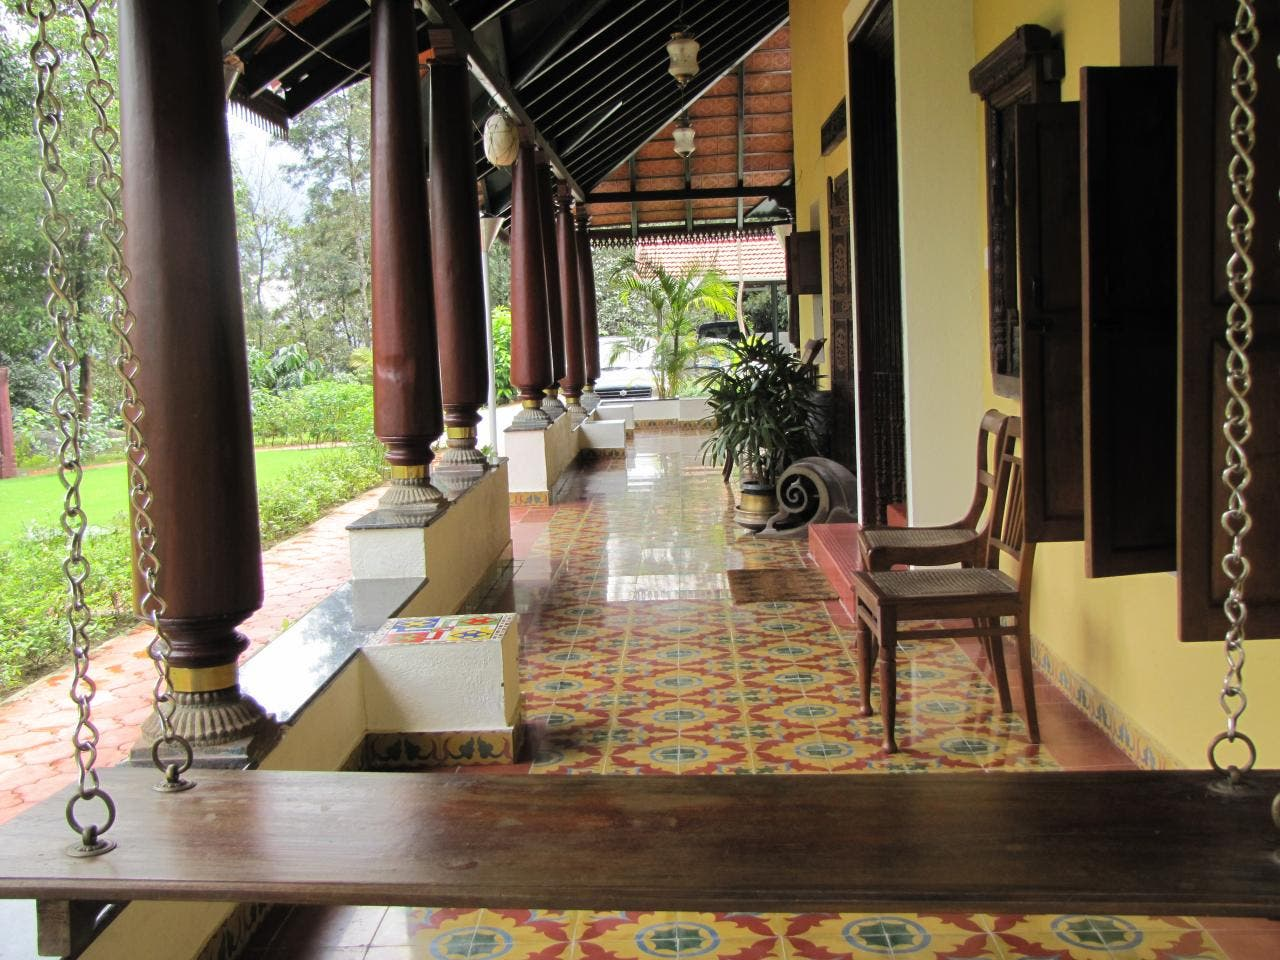 Hospitality of the people of Coorg immensely contributes toward the popularity of these homestays. (Supplied)